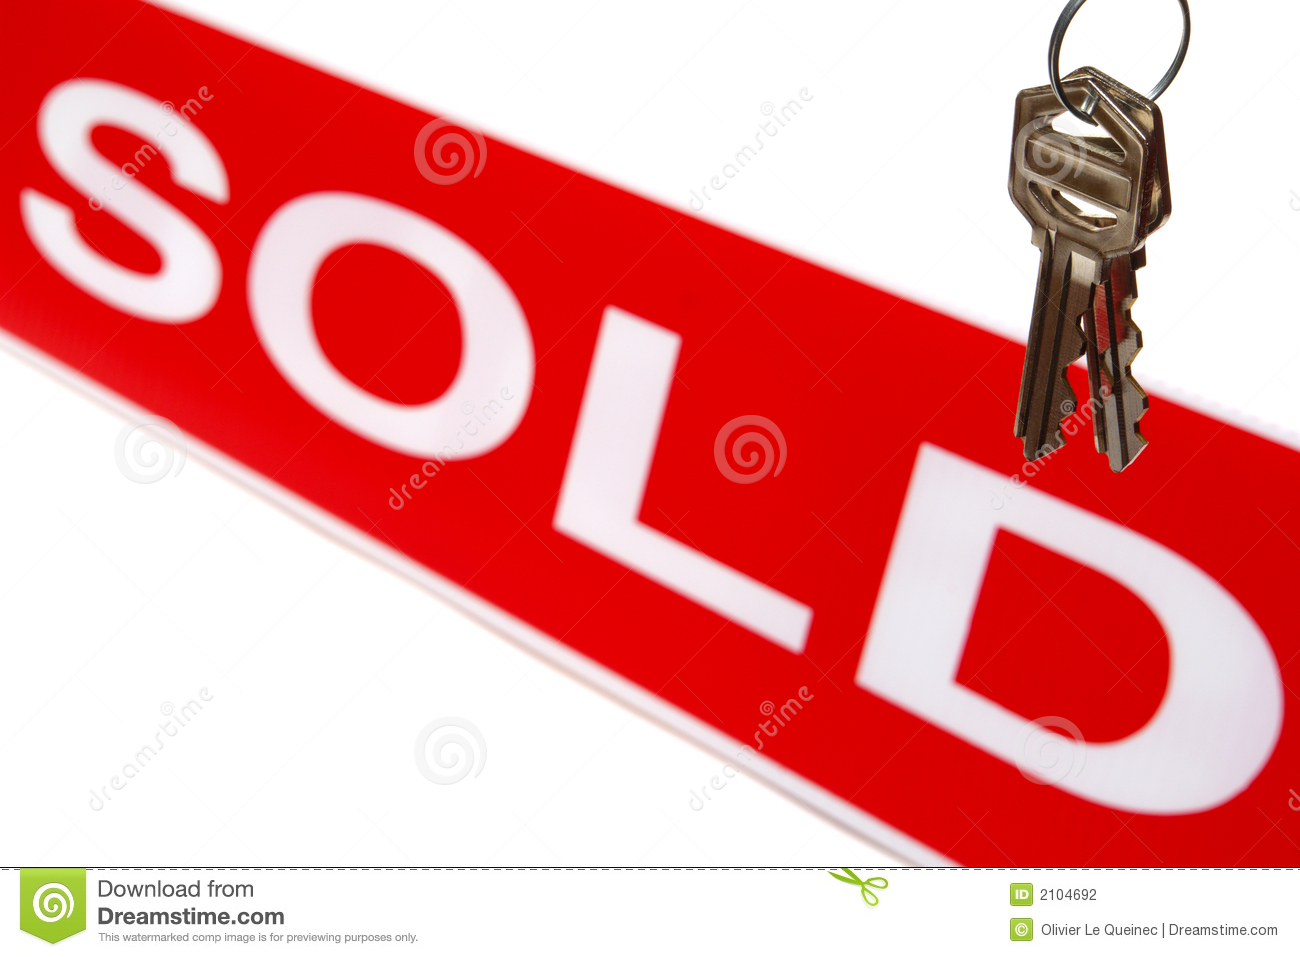 Real Estate House Keys and Realtor Sold Sign